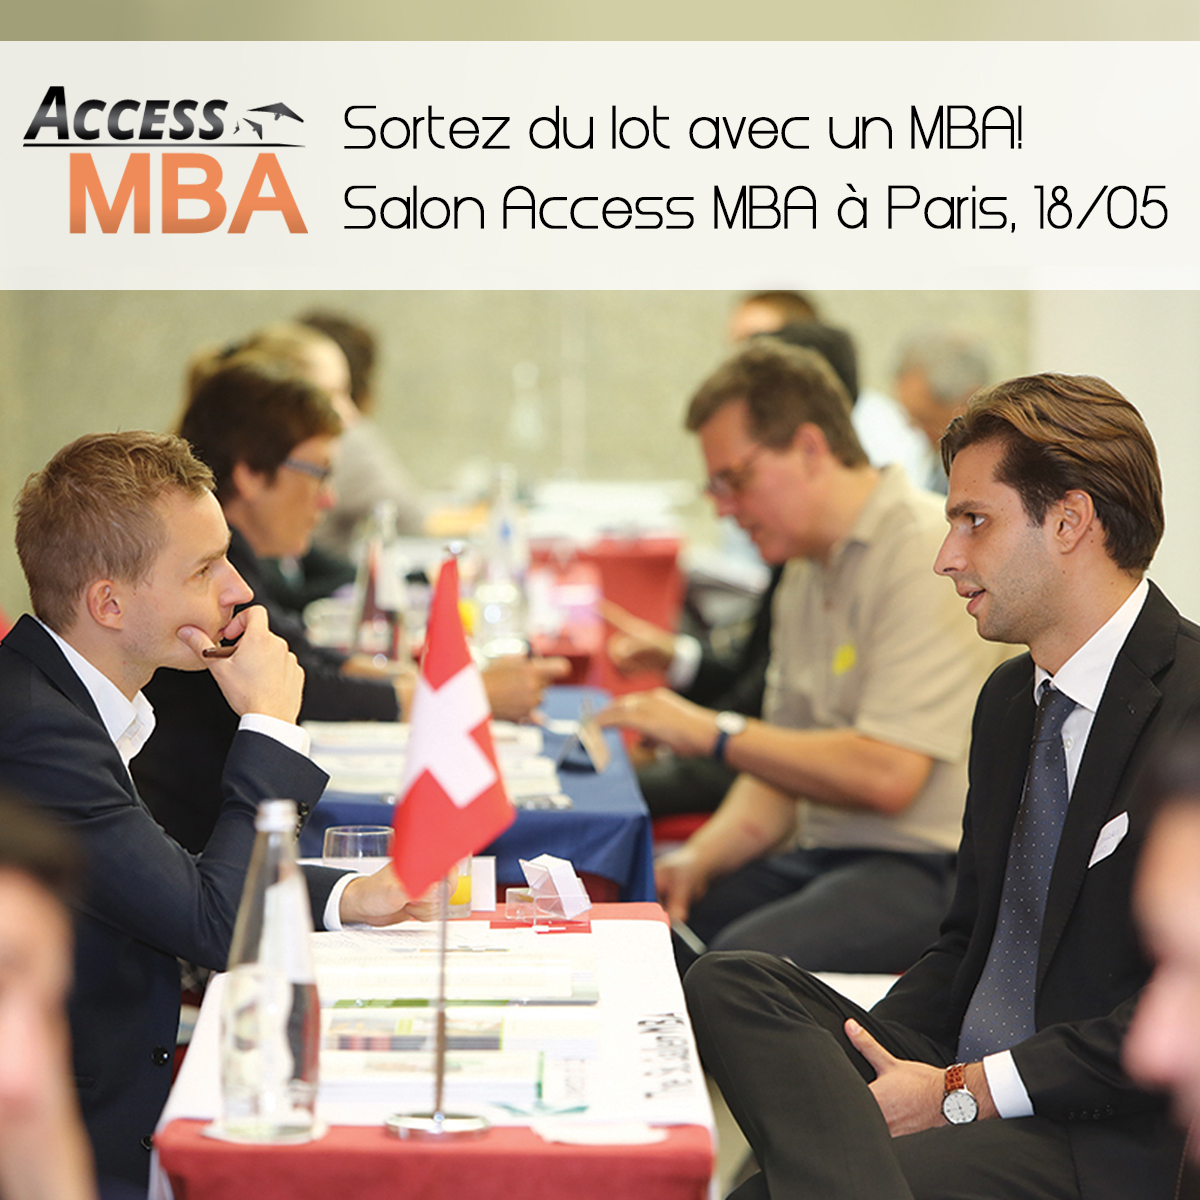 access mba tour salon des meilleurs mba On salon mba paris